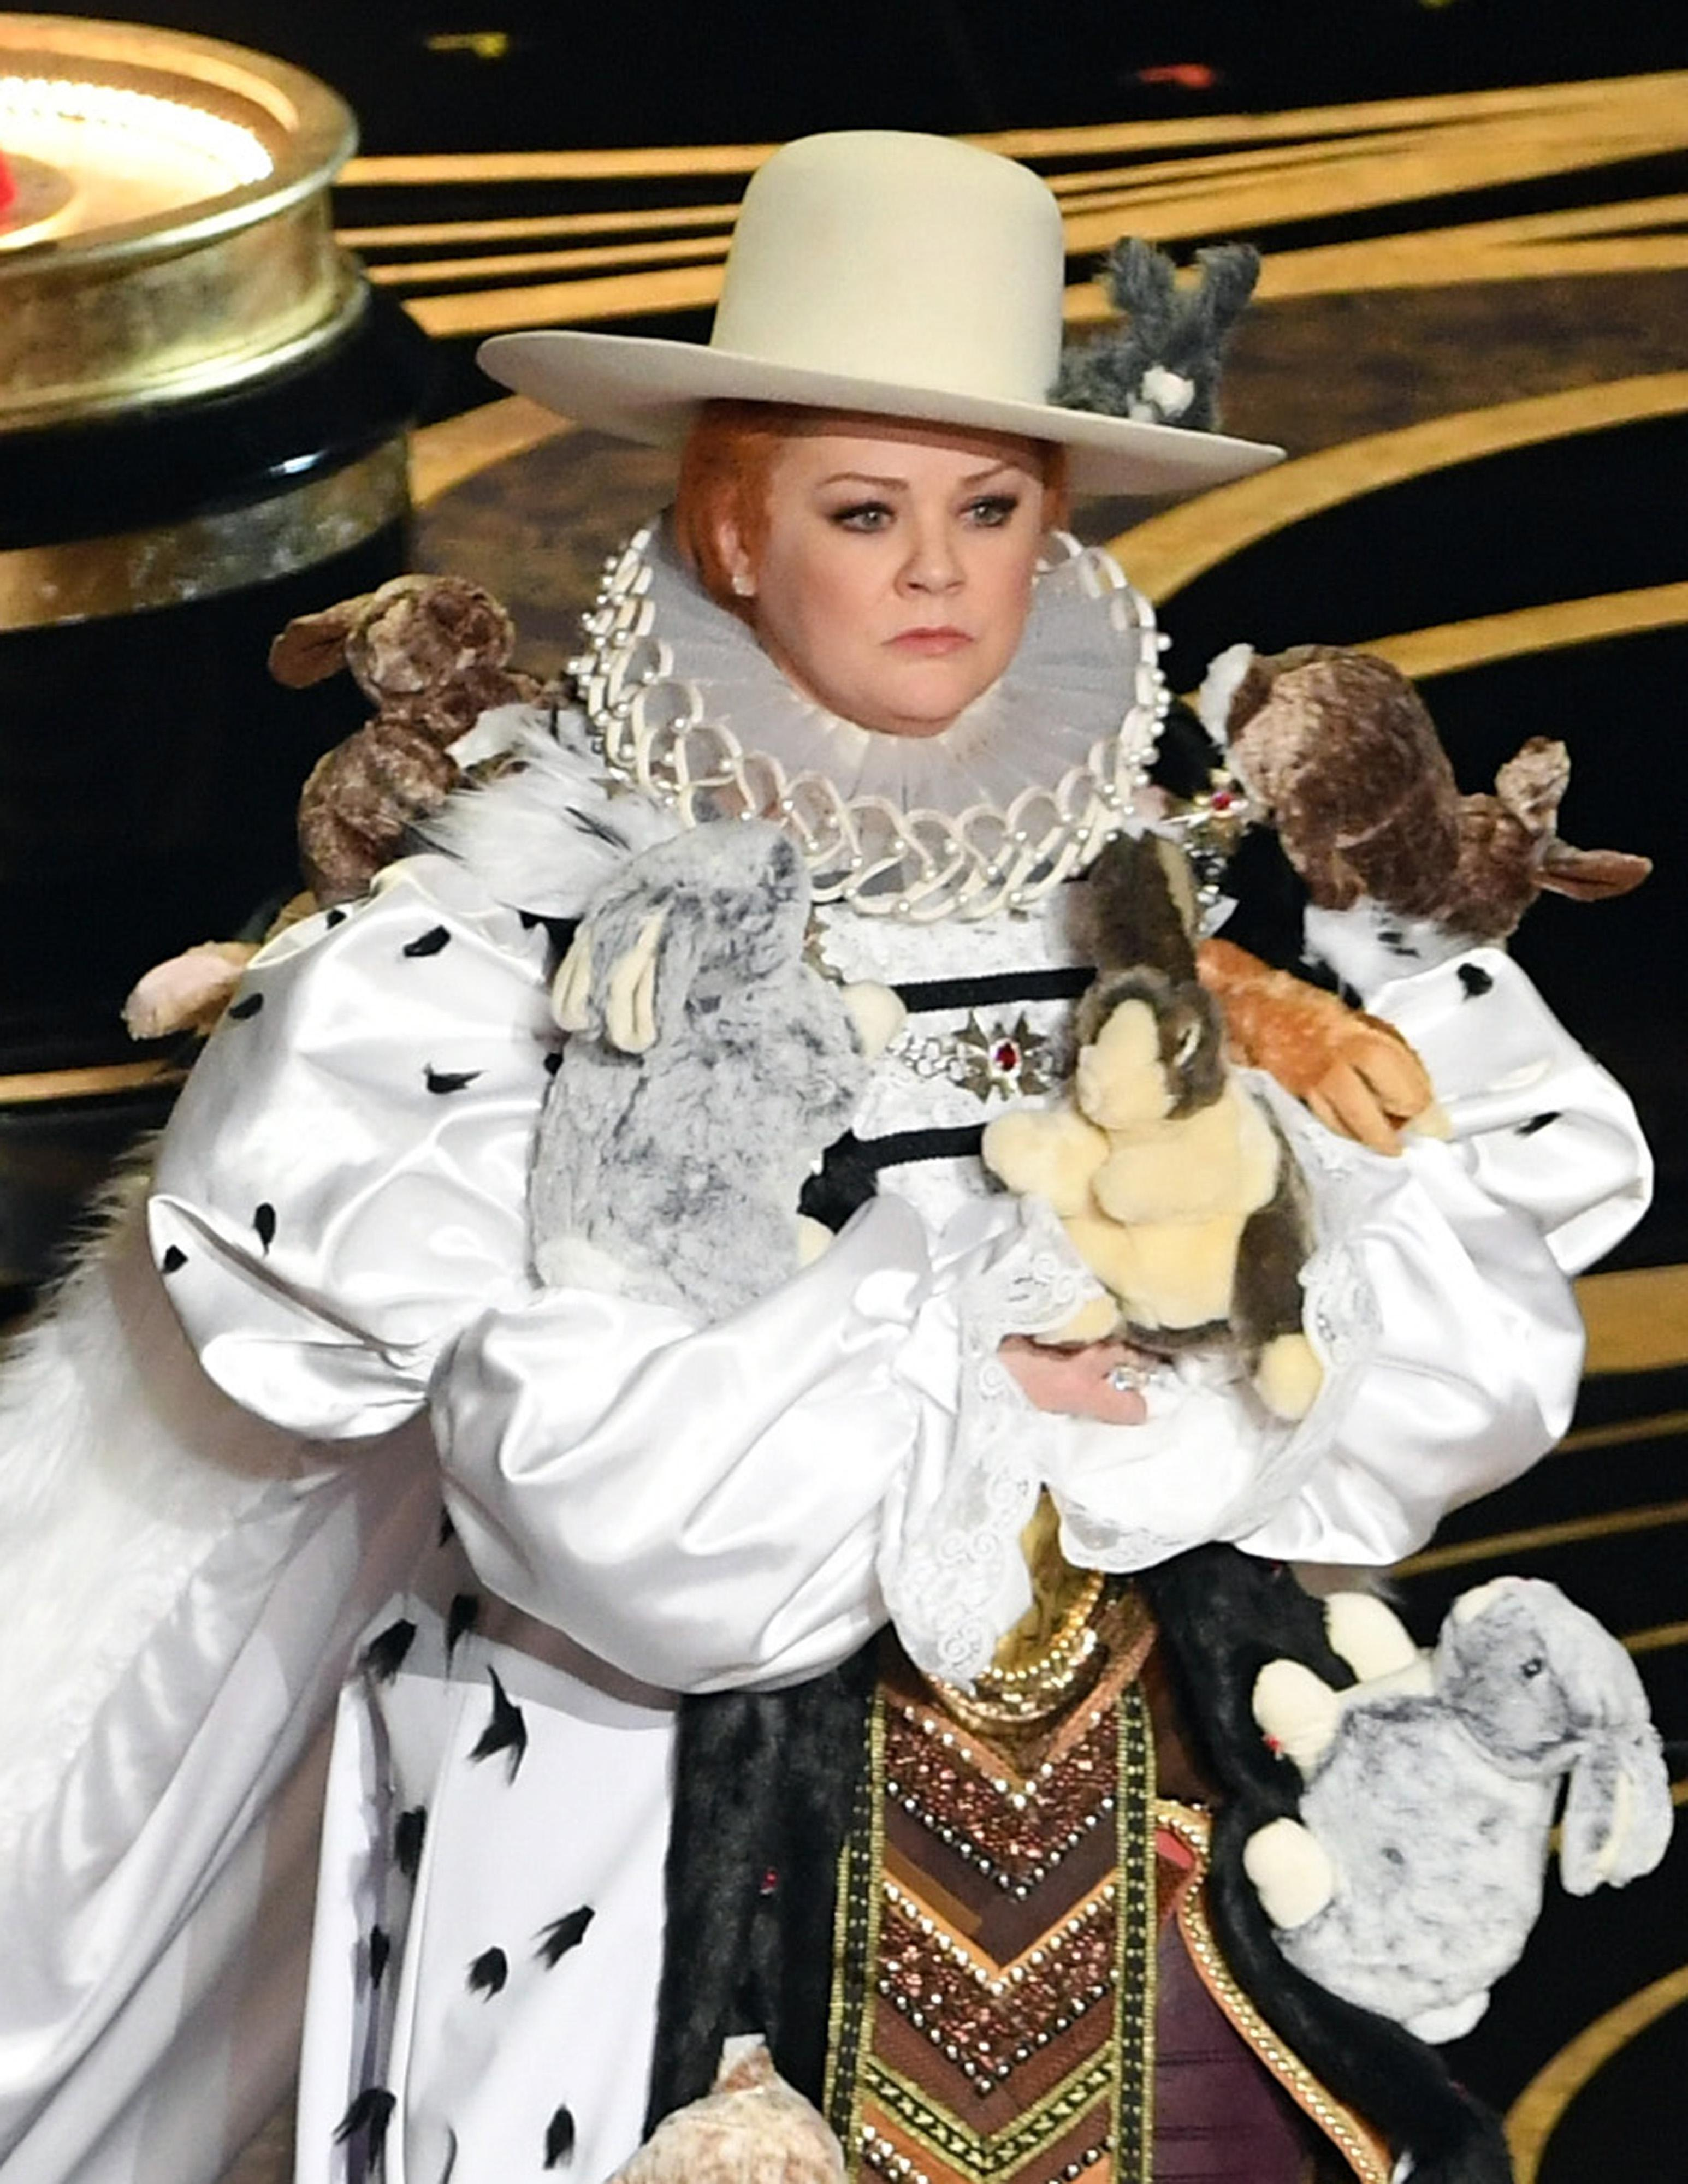 A close-up of Melissa McCarthy in costume. Her wide-brimmed hat has a stuffed rabbit on it.